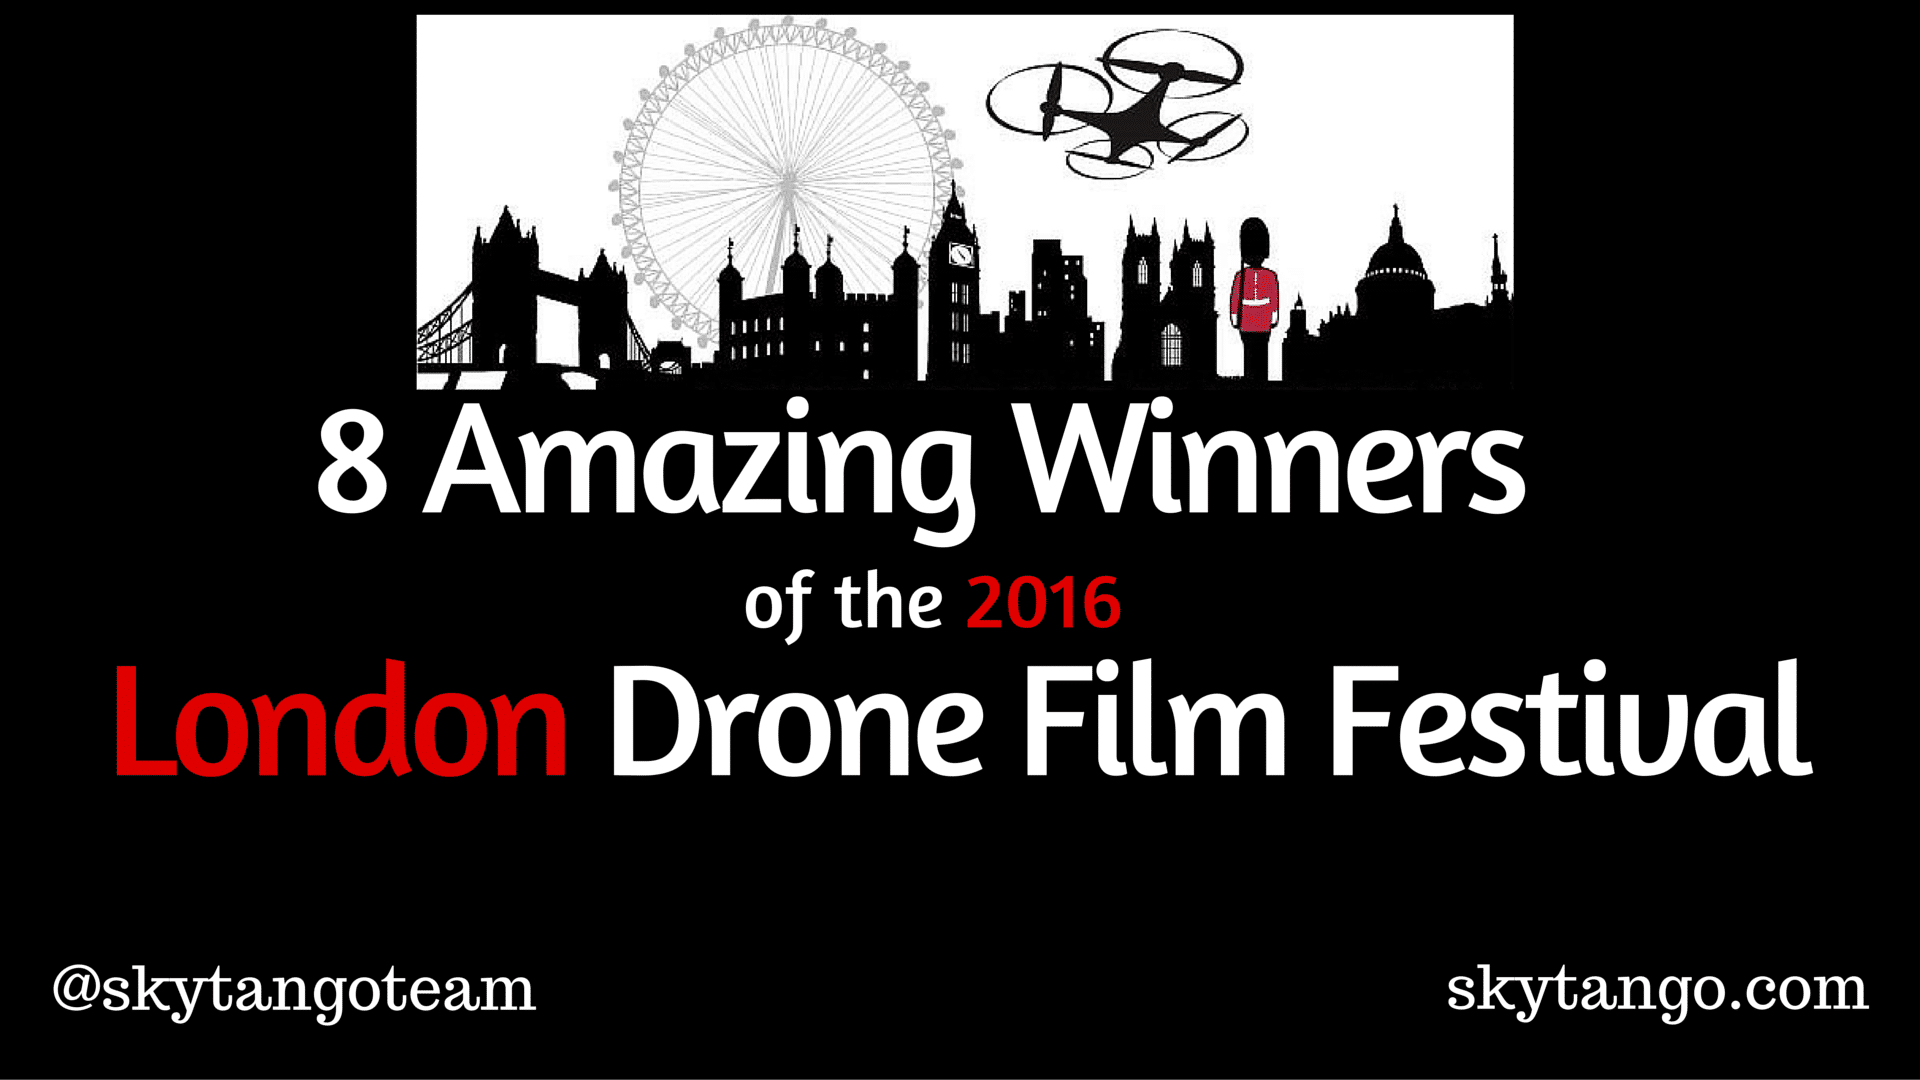 8 Amazing Video Winners of the 2016 London Drone Film Festival